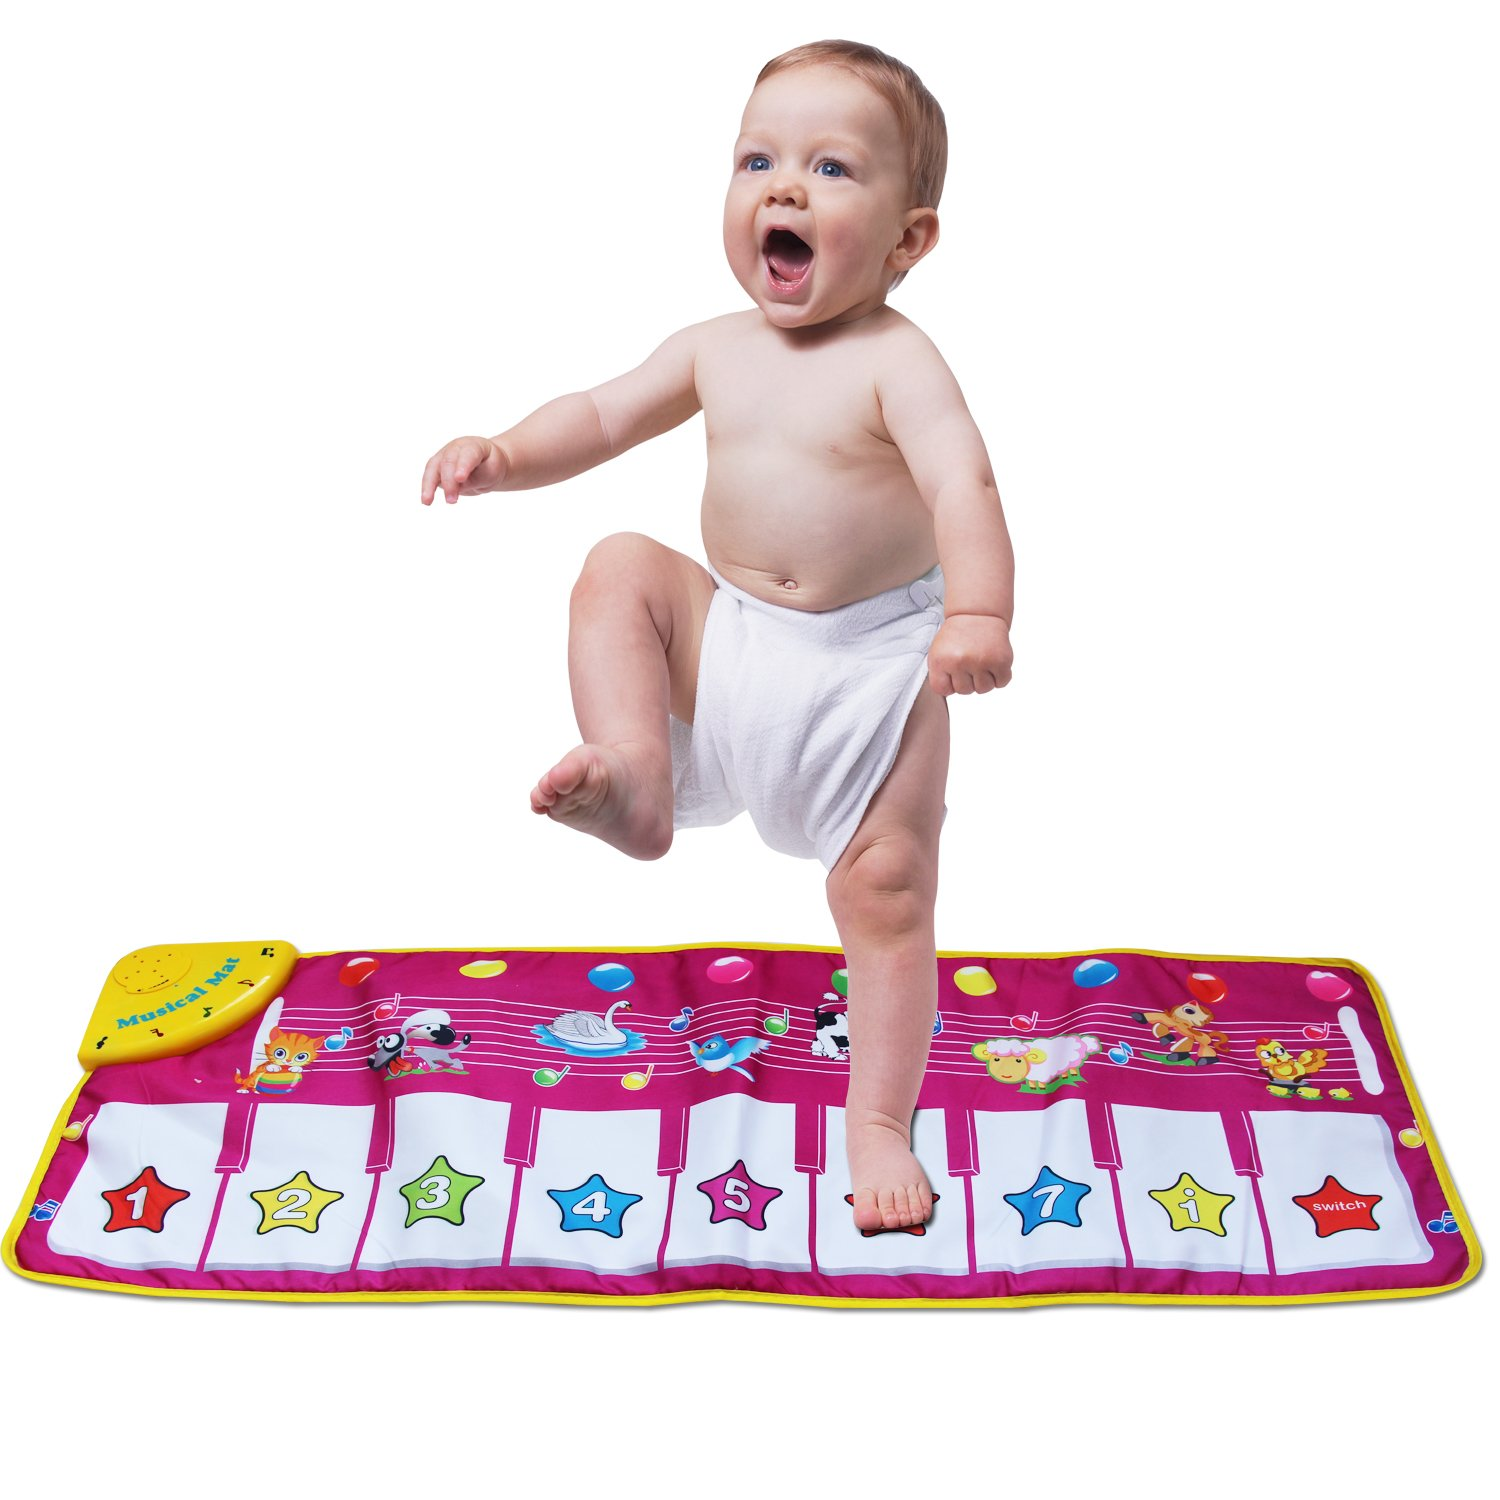 zoordo Musical Mat,Kingseye Baby Early Education Music Piano Keyboard Carpet Animal Blanket Touch Play Safety Learn Singing Funny Toy for Kids (Purple) by zoordo